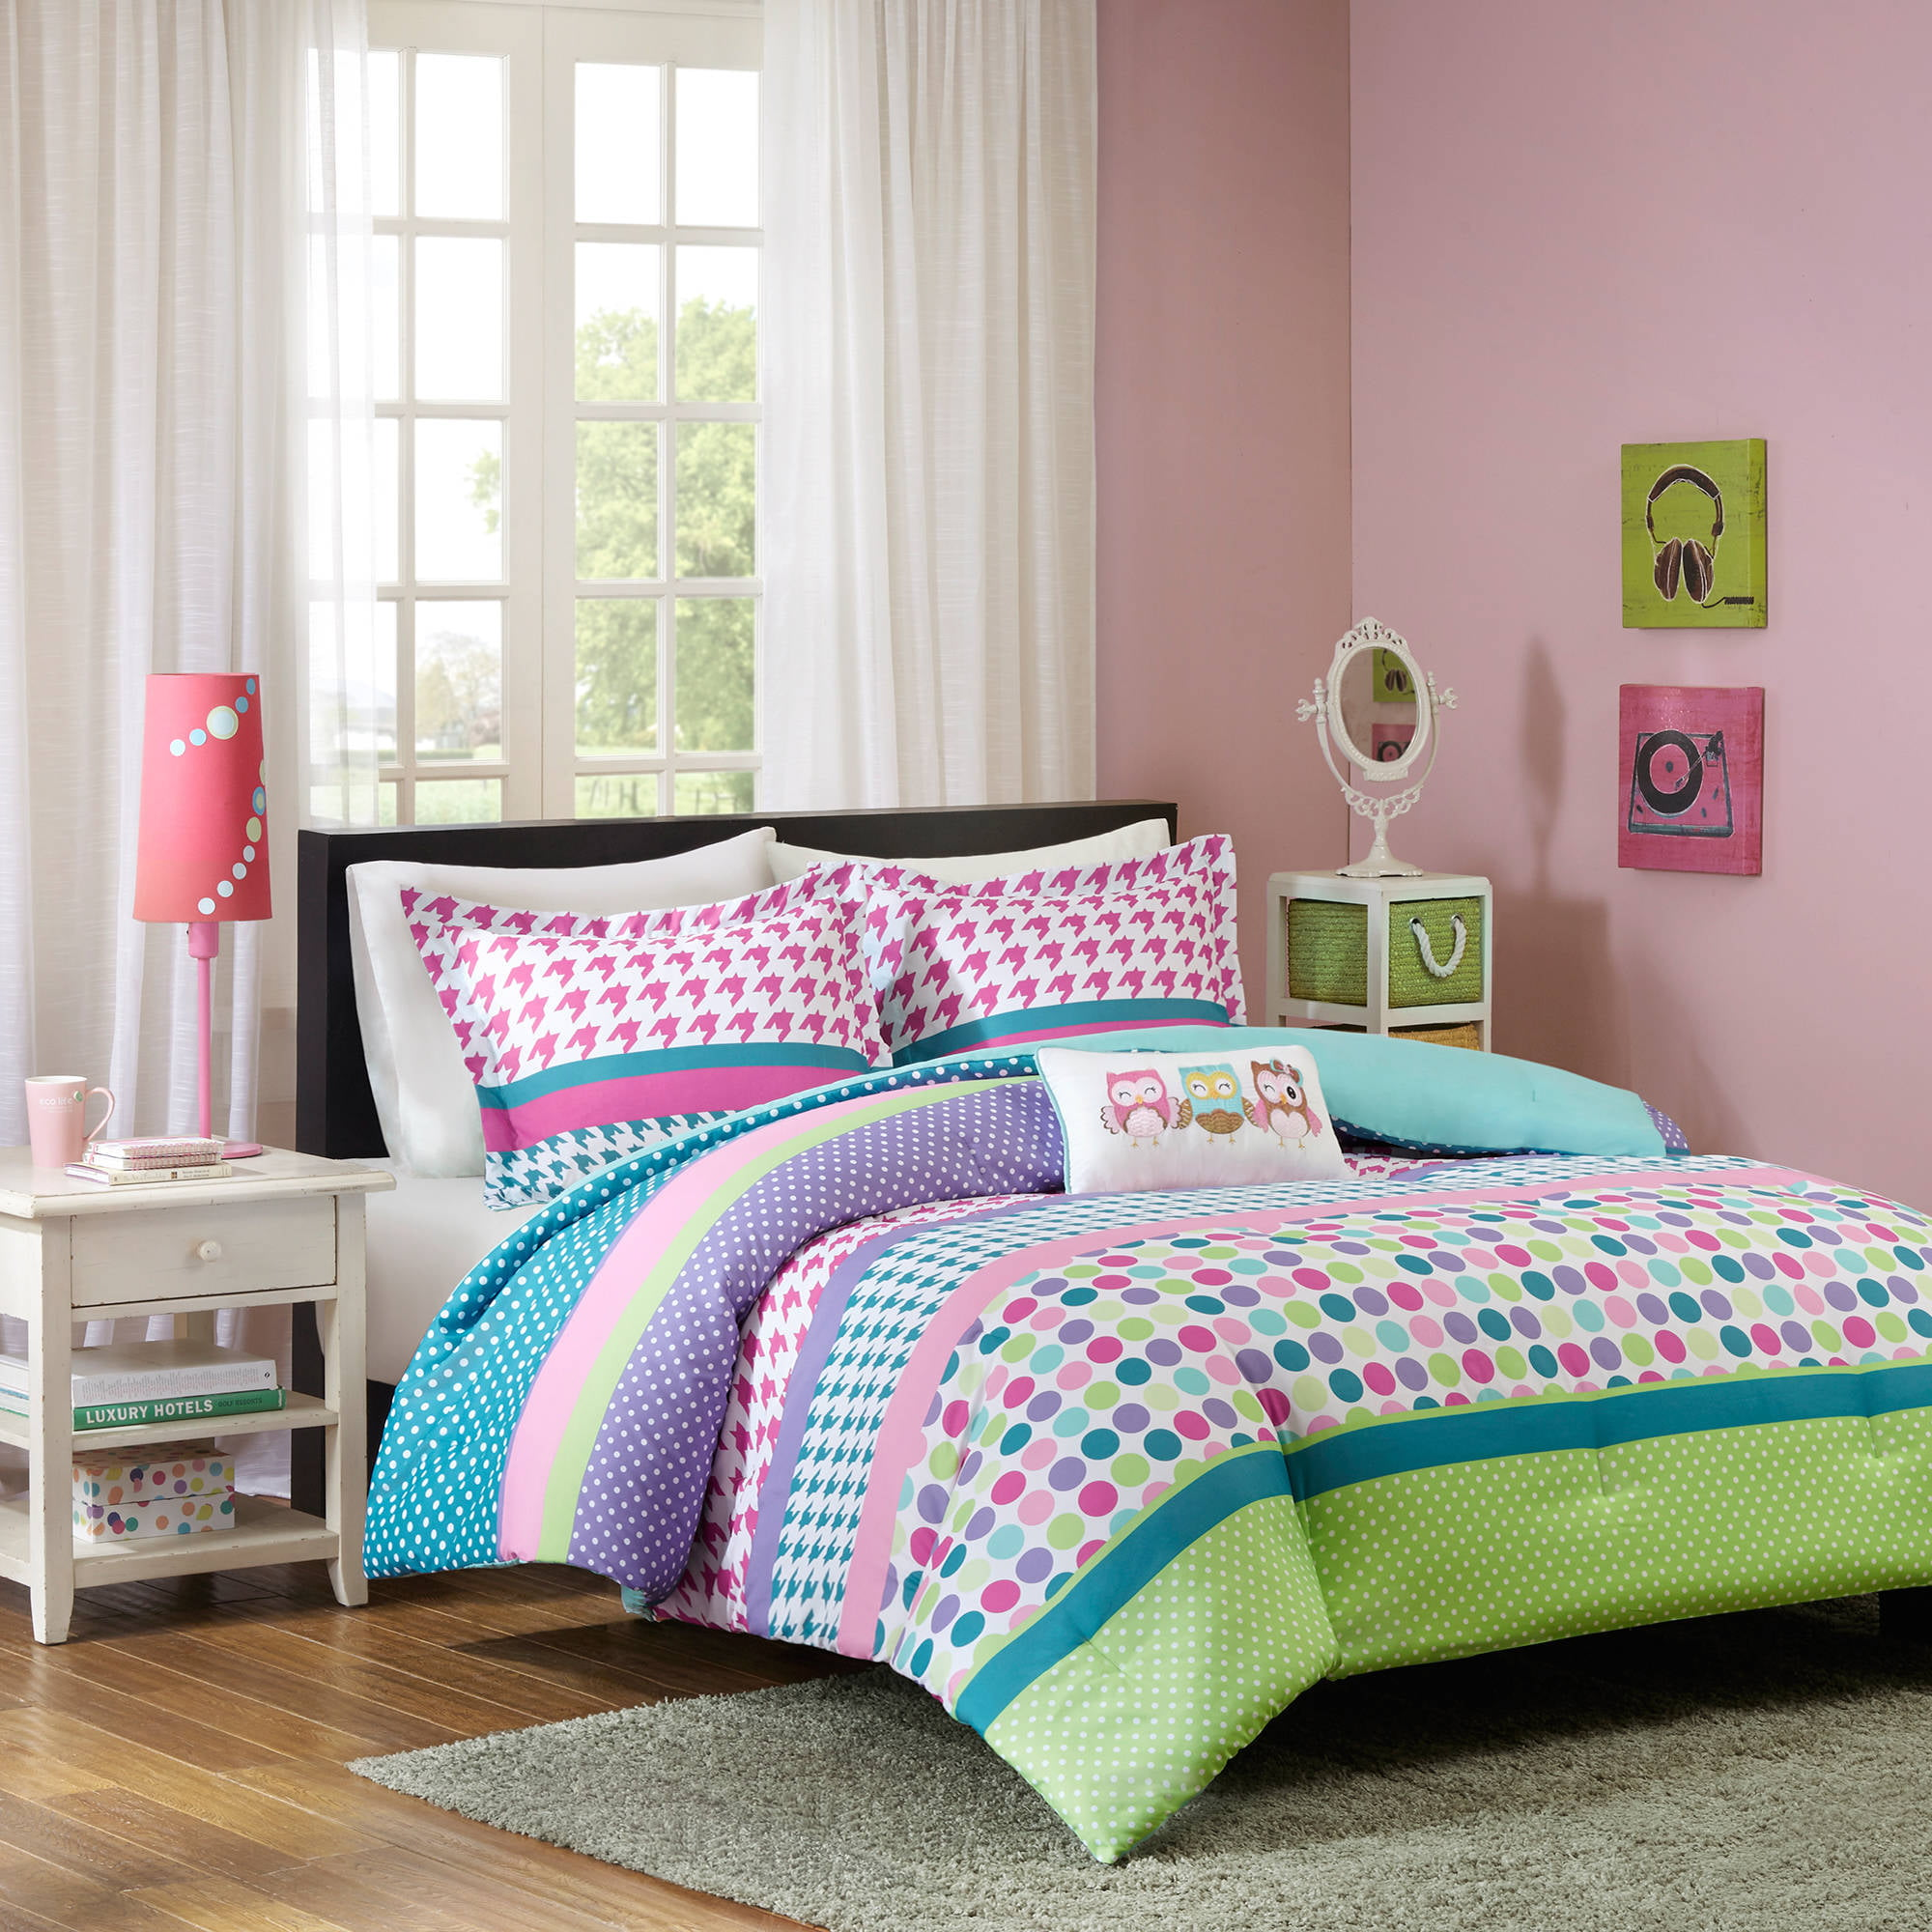 girls bedding Mainstays Kids Woodland Safari Girl Bed in a Bag Bedding Set - Walmart.com